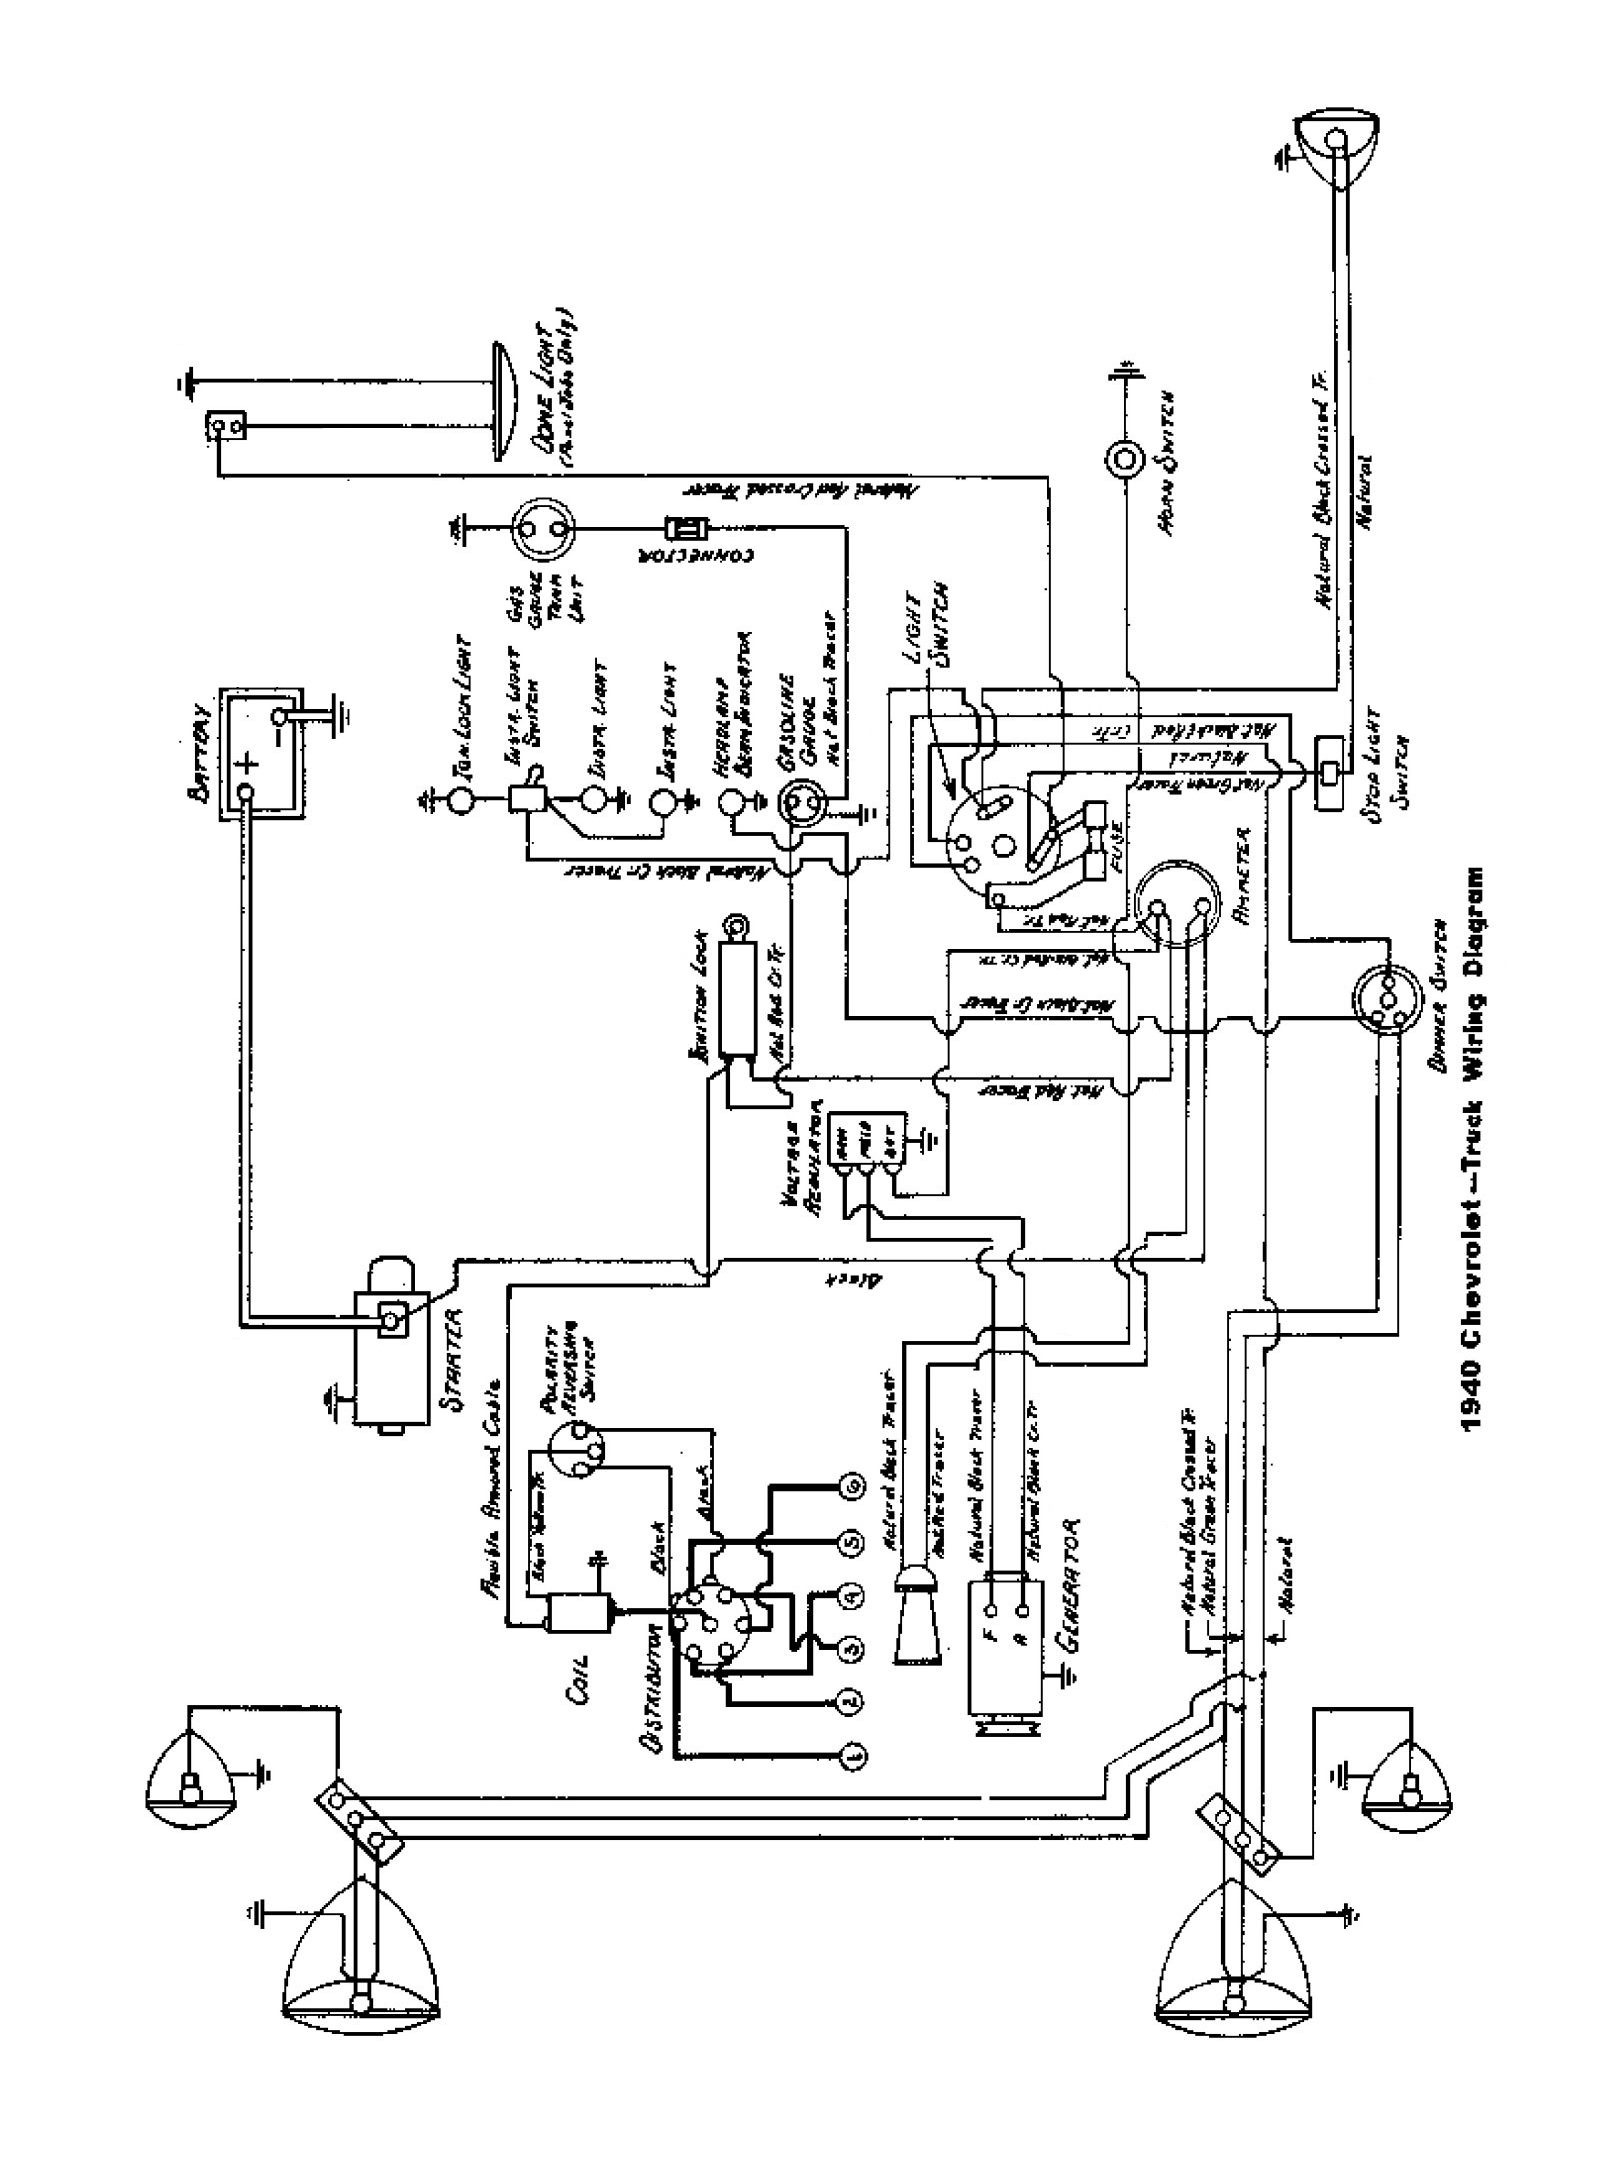 40truck chevy wiring diagrams 57 chevy truck wiring harness at mifinder.co